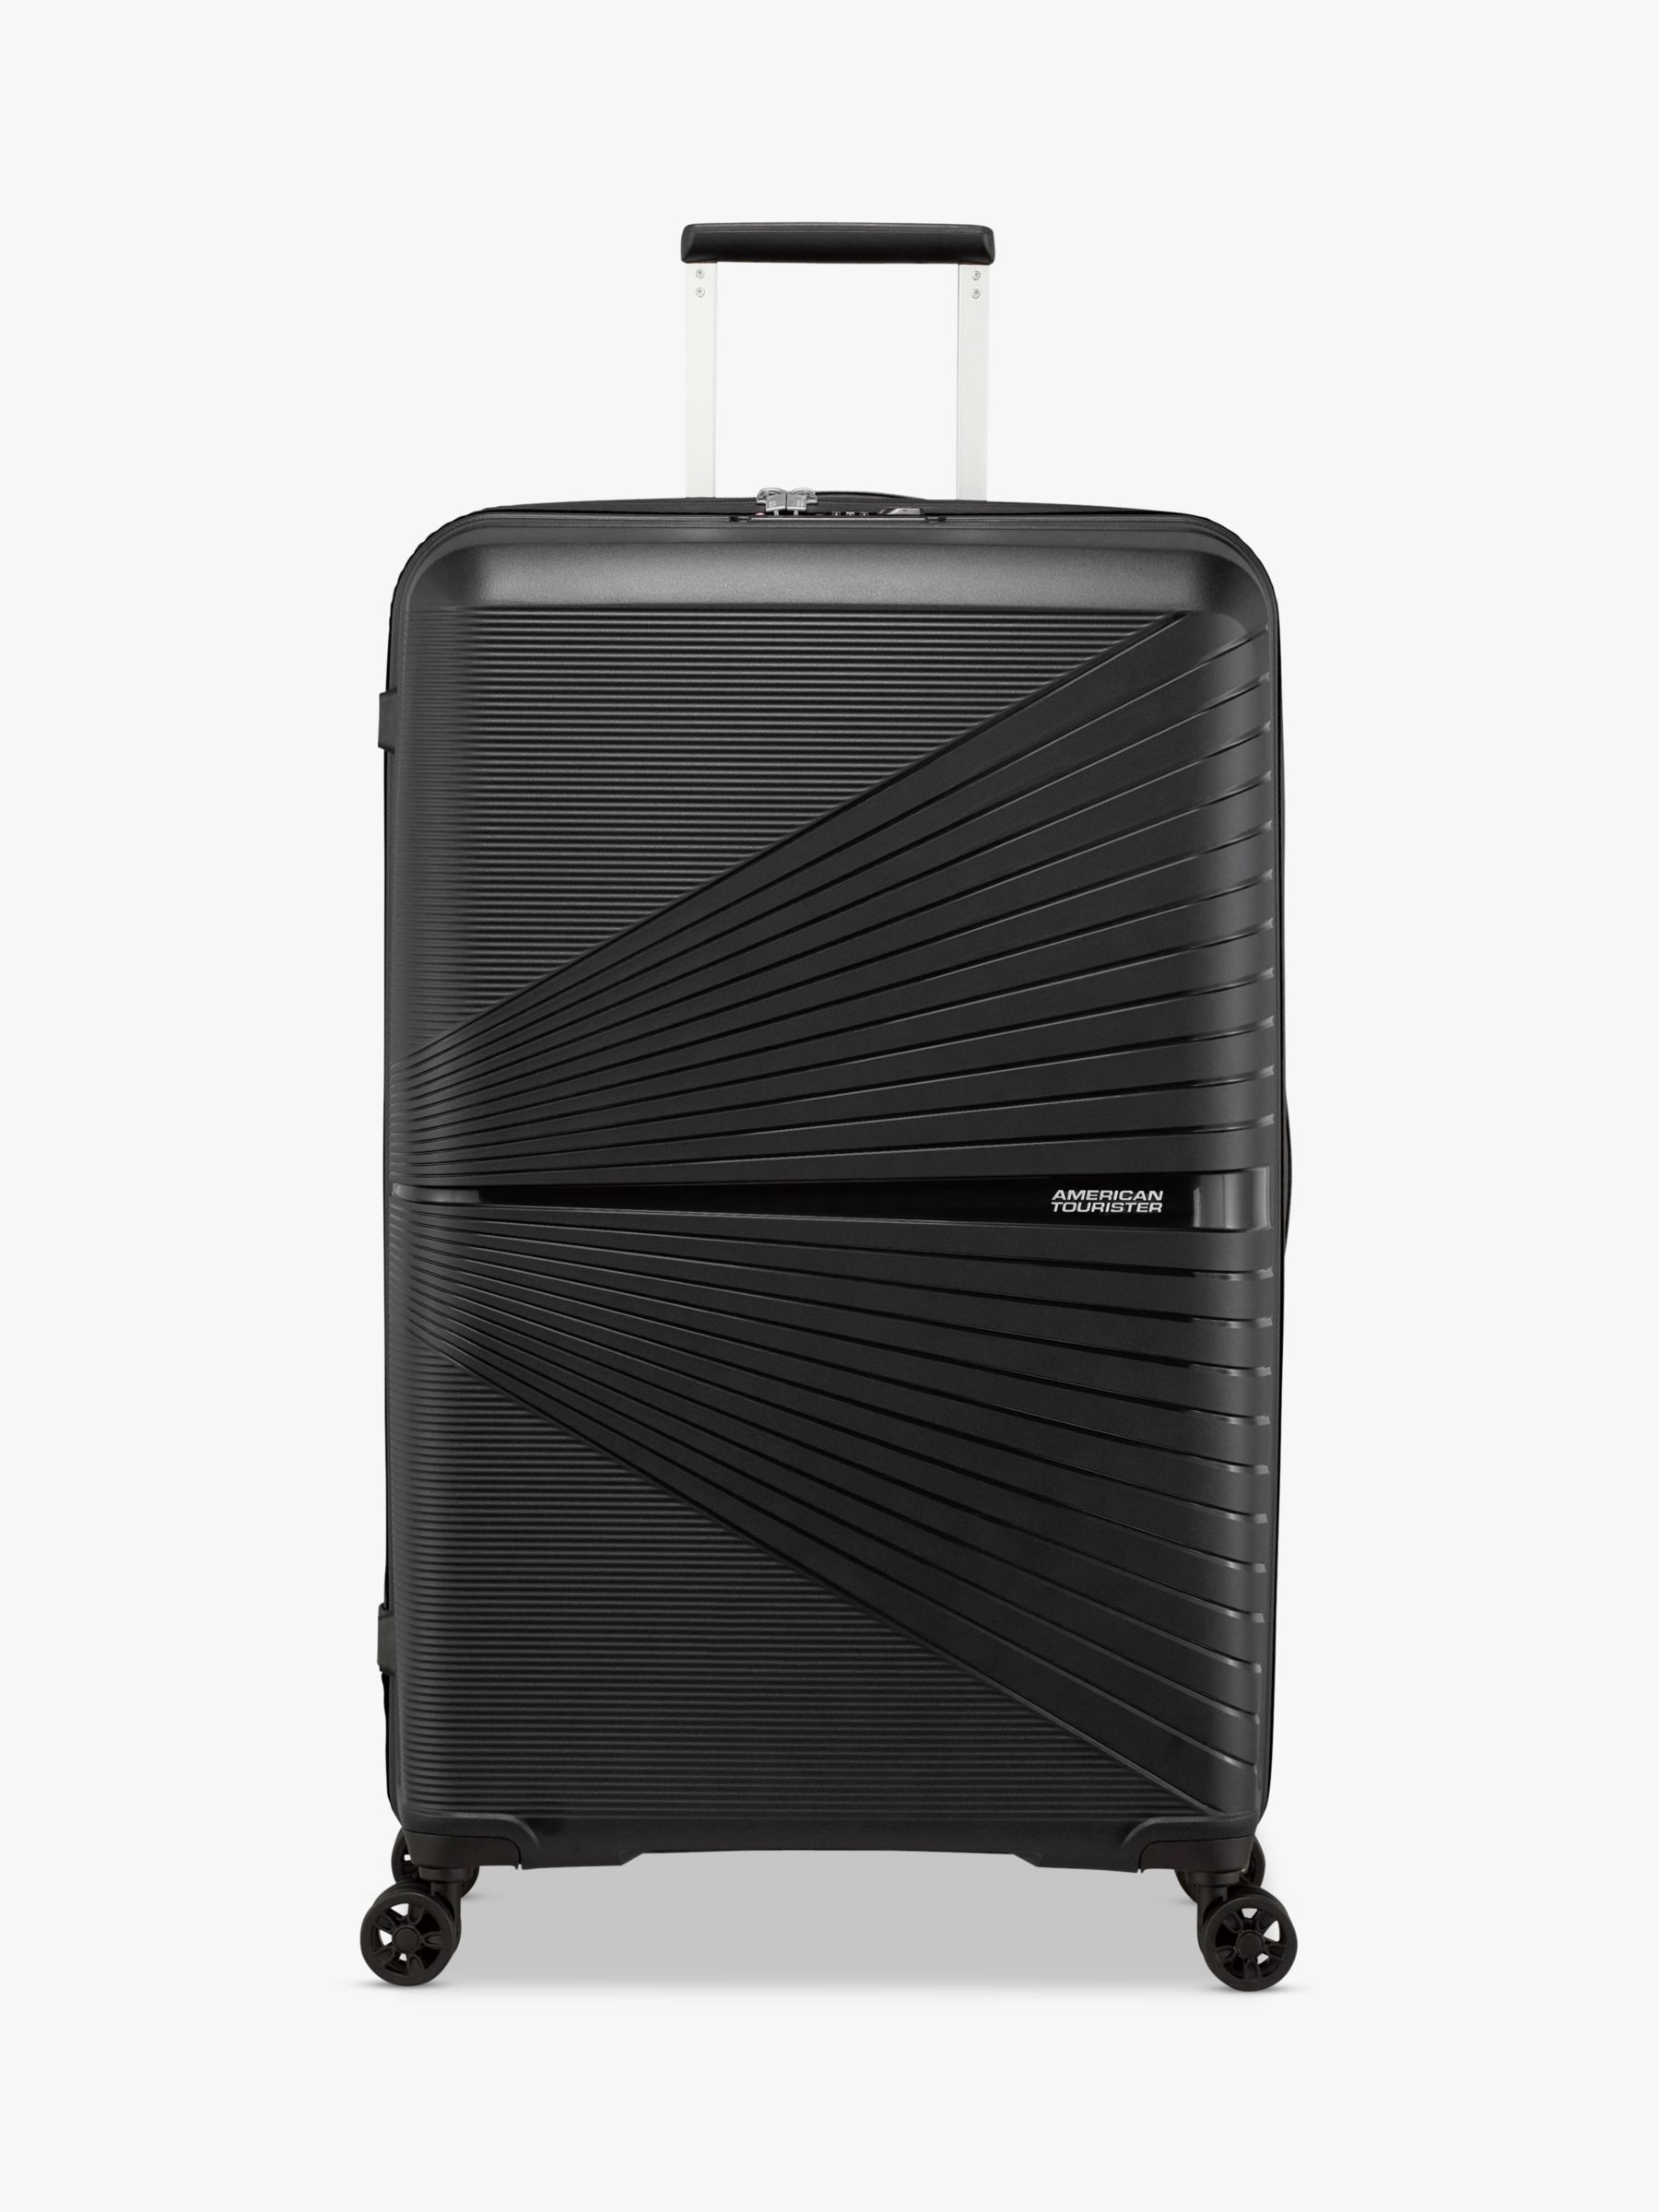 American Tourister American Tourister Airconic 77cm 4-Wheel Large Suitcase